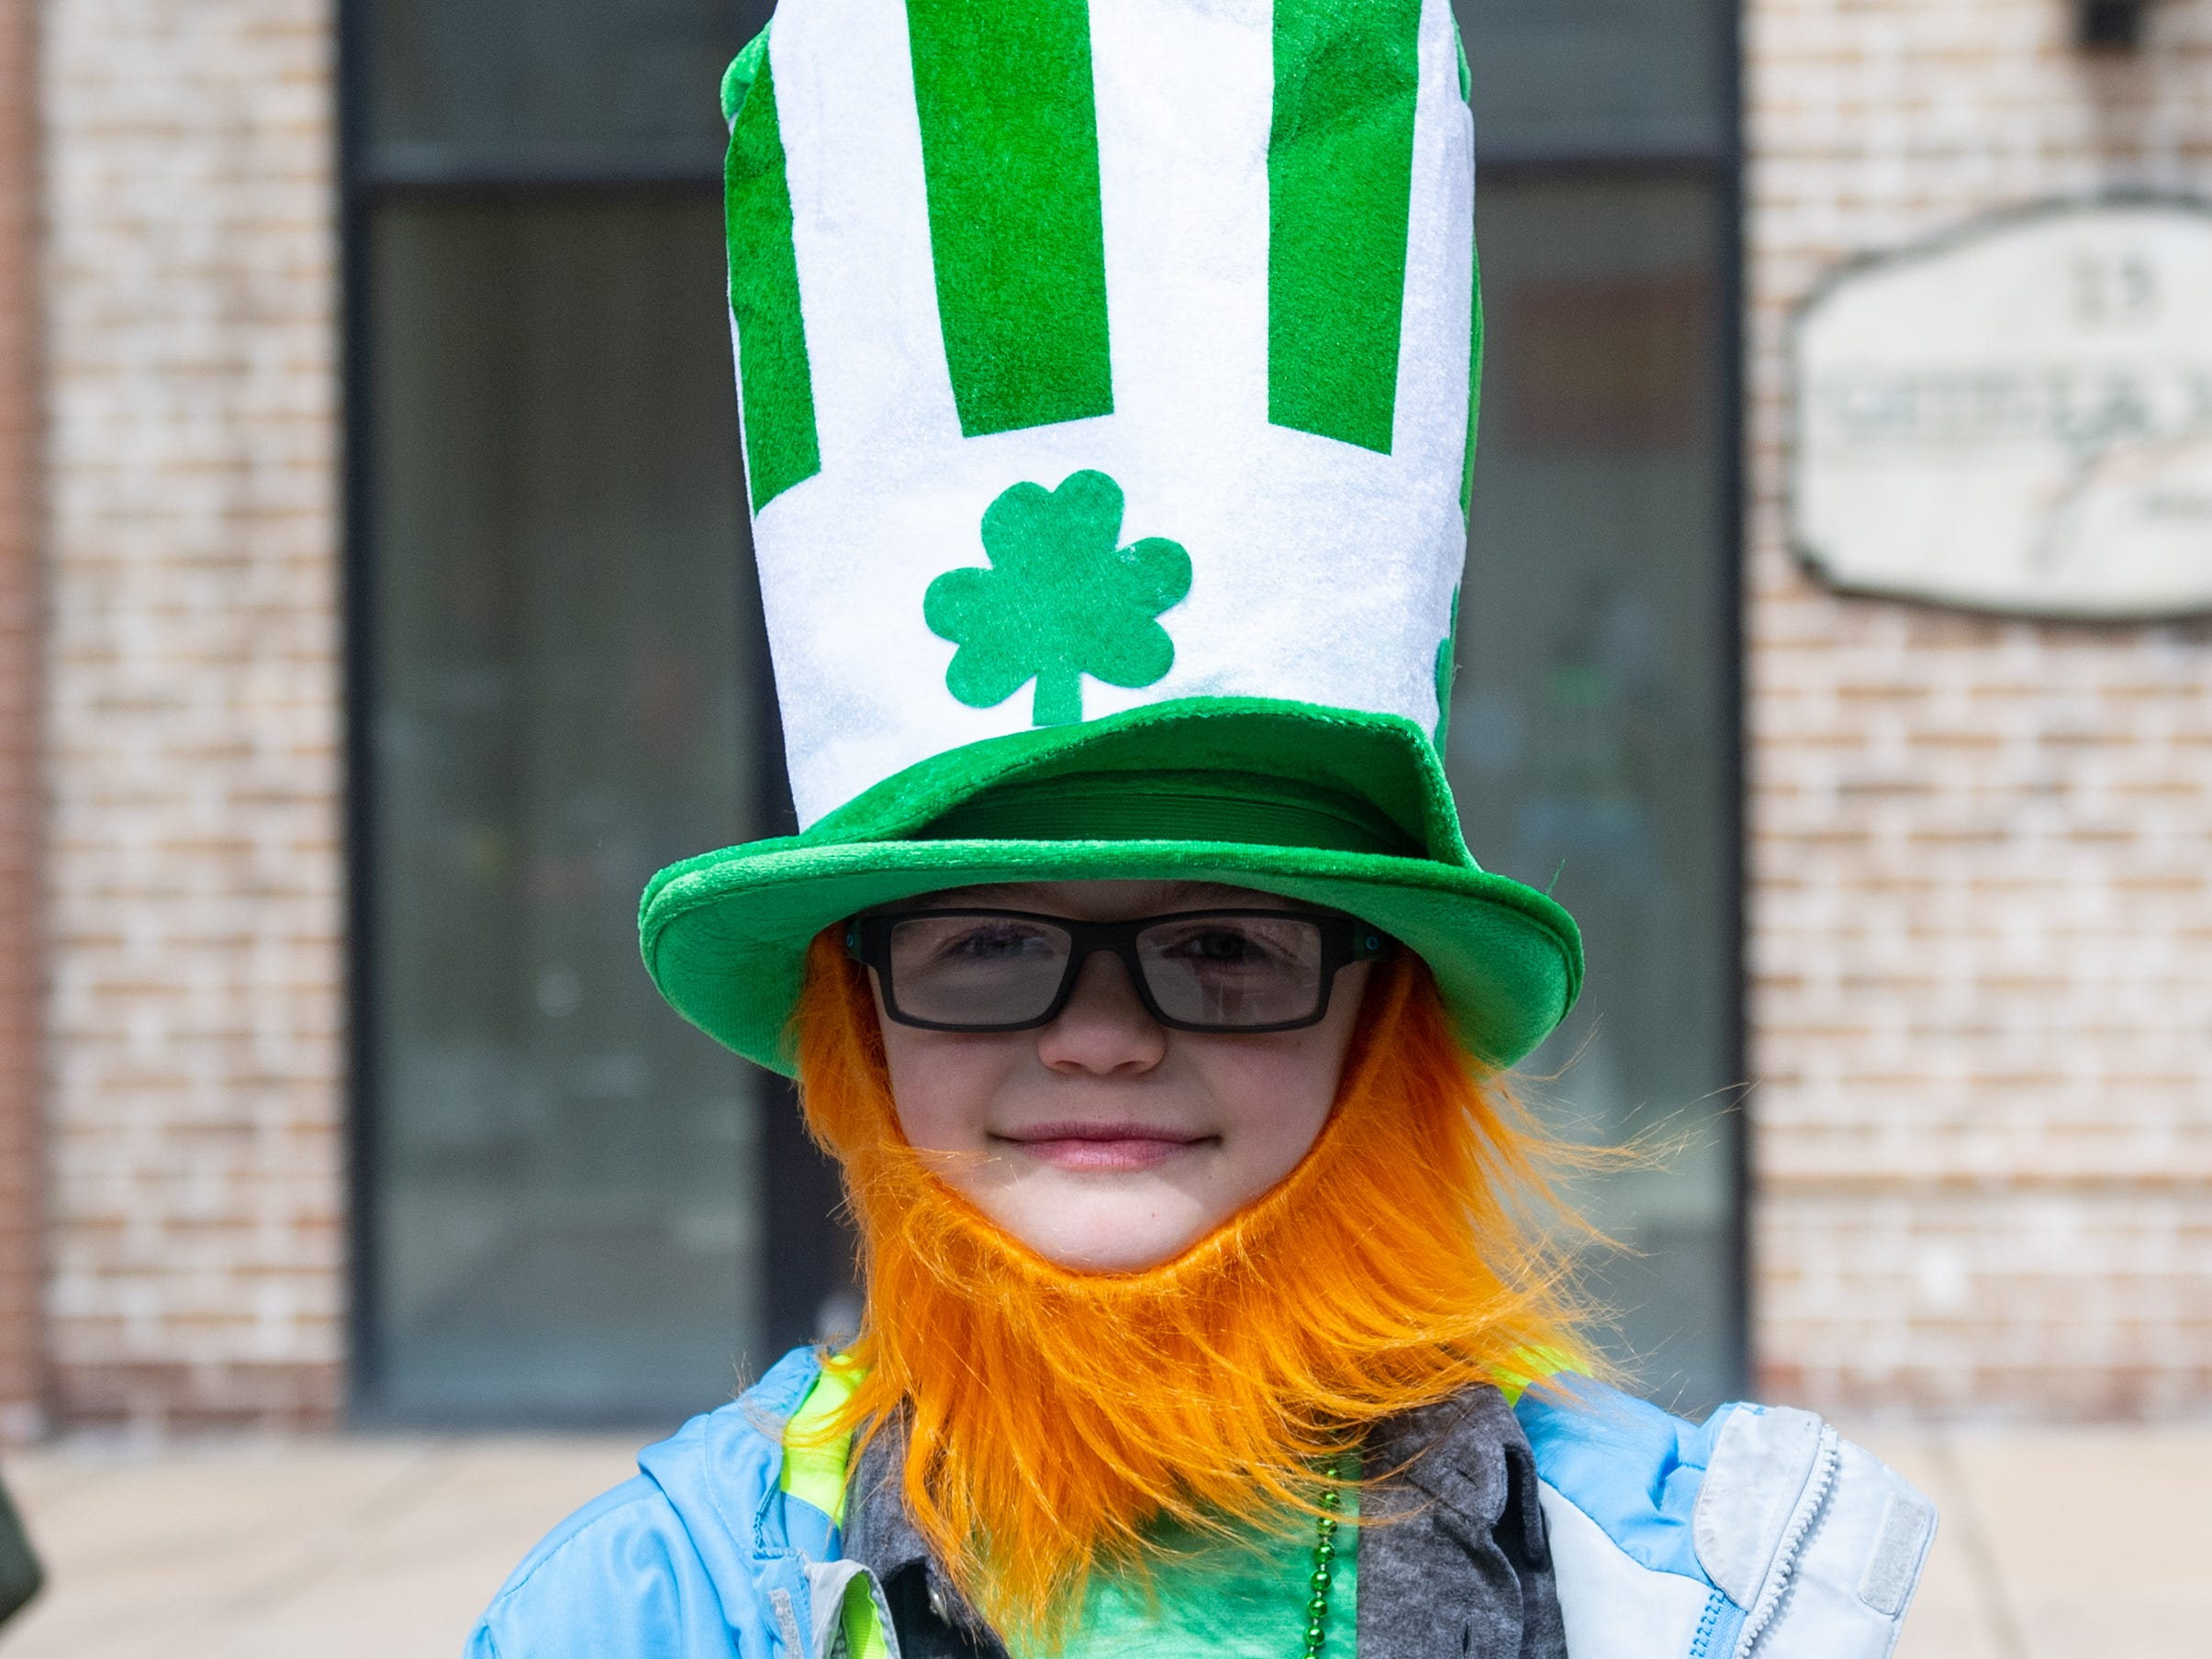 Quinn Capik is ready for the 36th Annual St. Patrick's Day Parade, March 16, 2019.